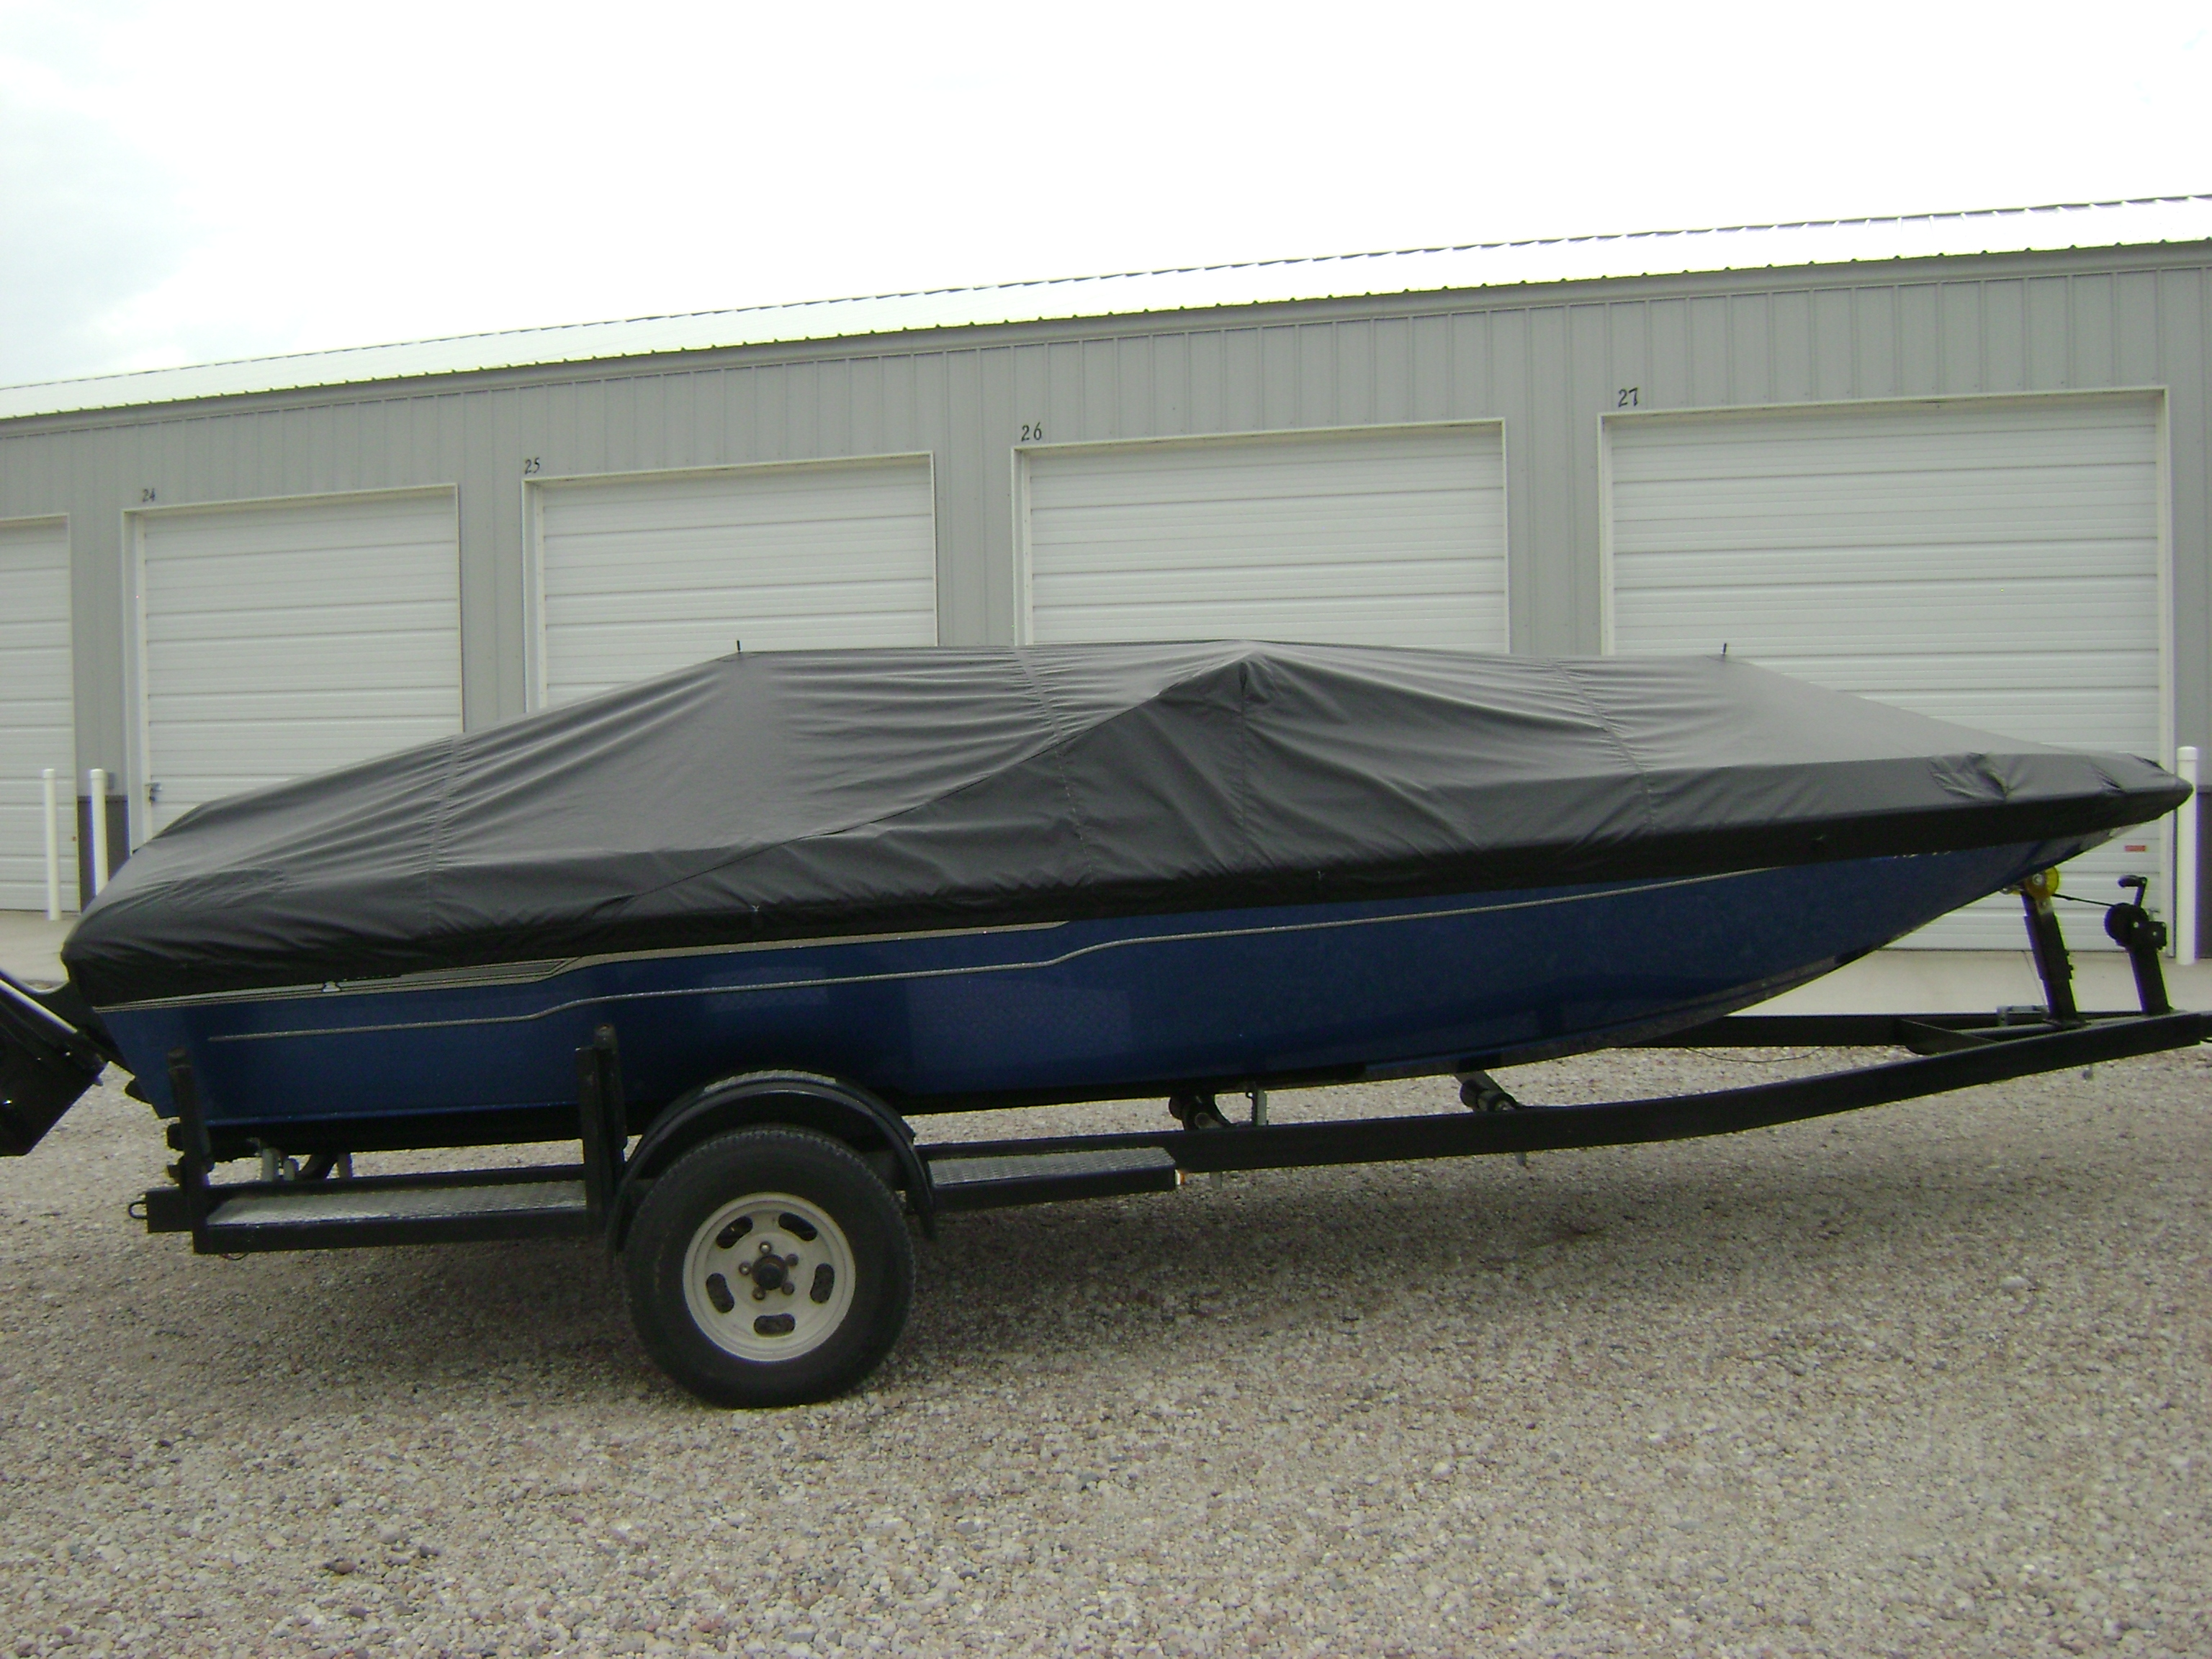 Boat 215 Angola Canvas Boat Covers